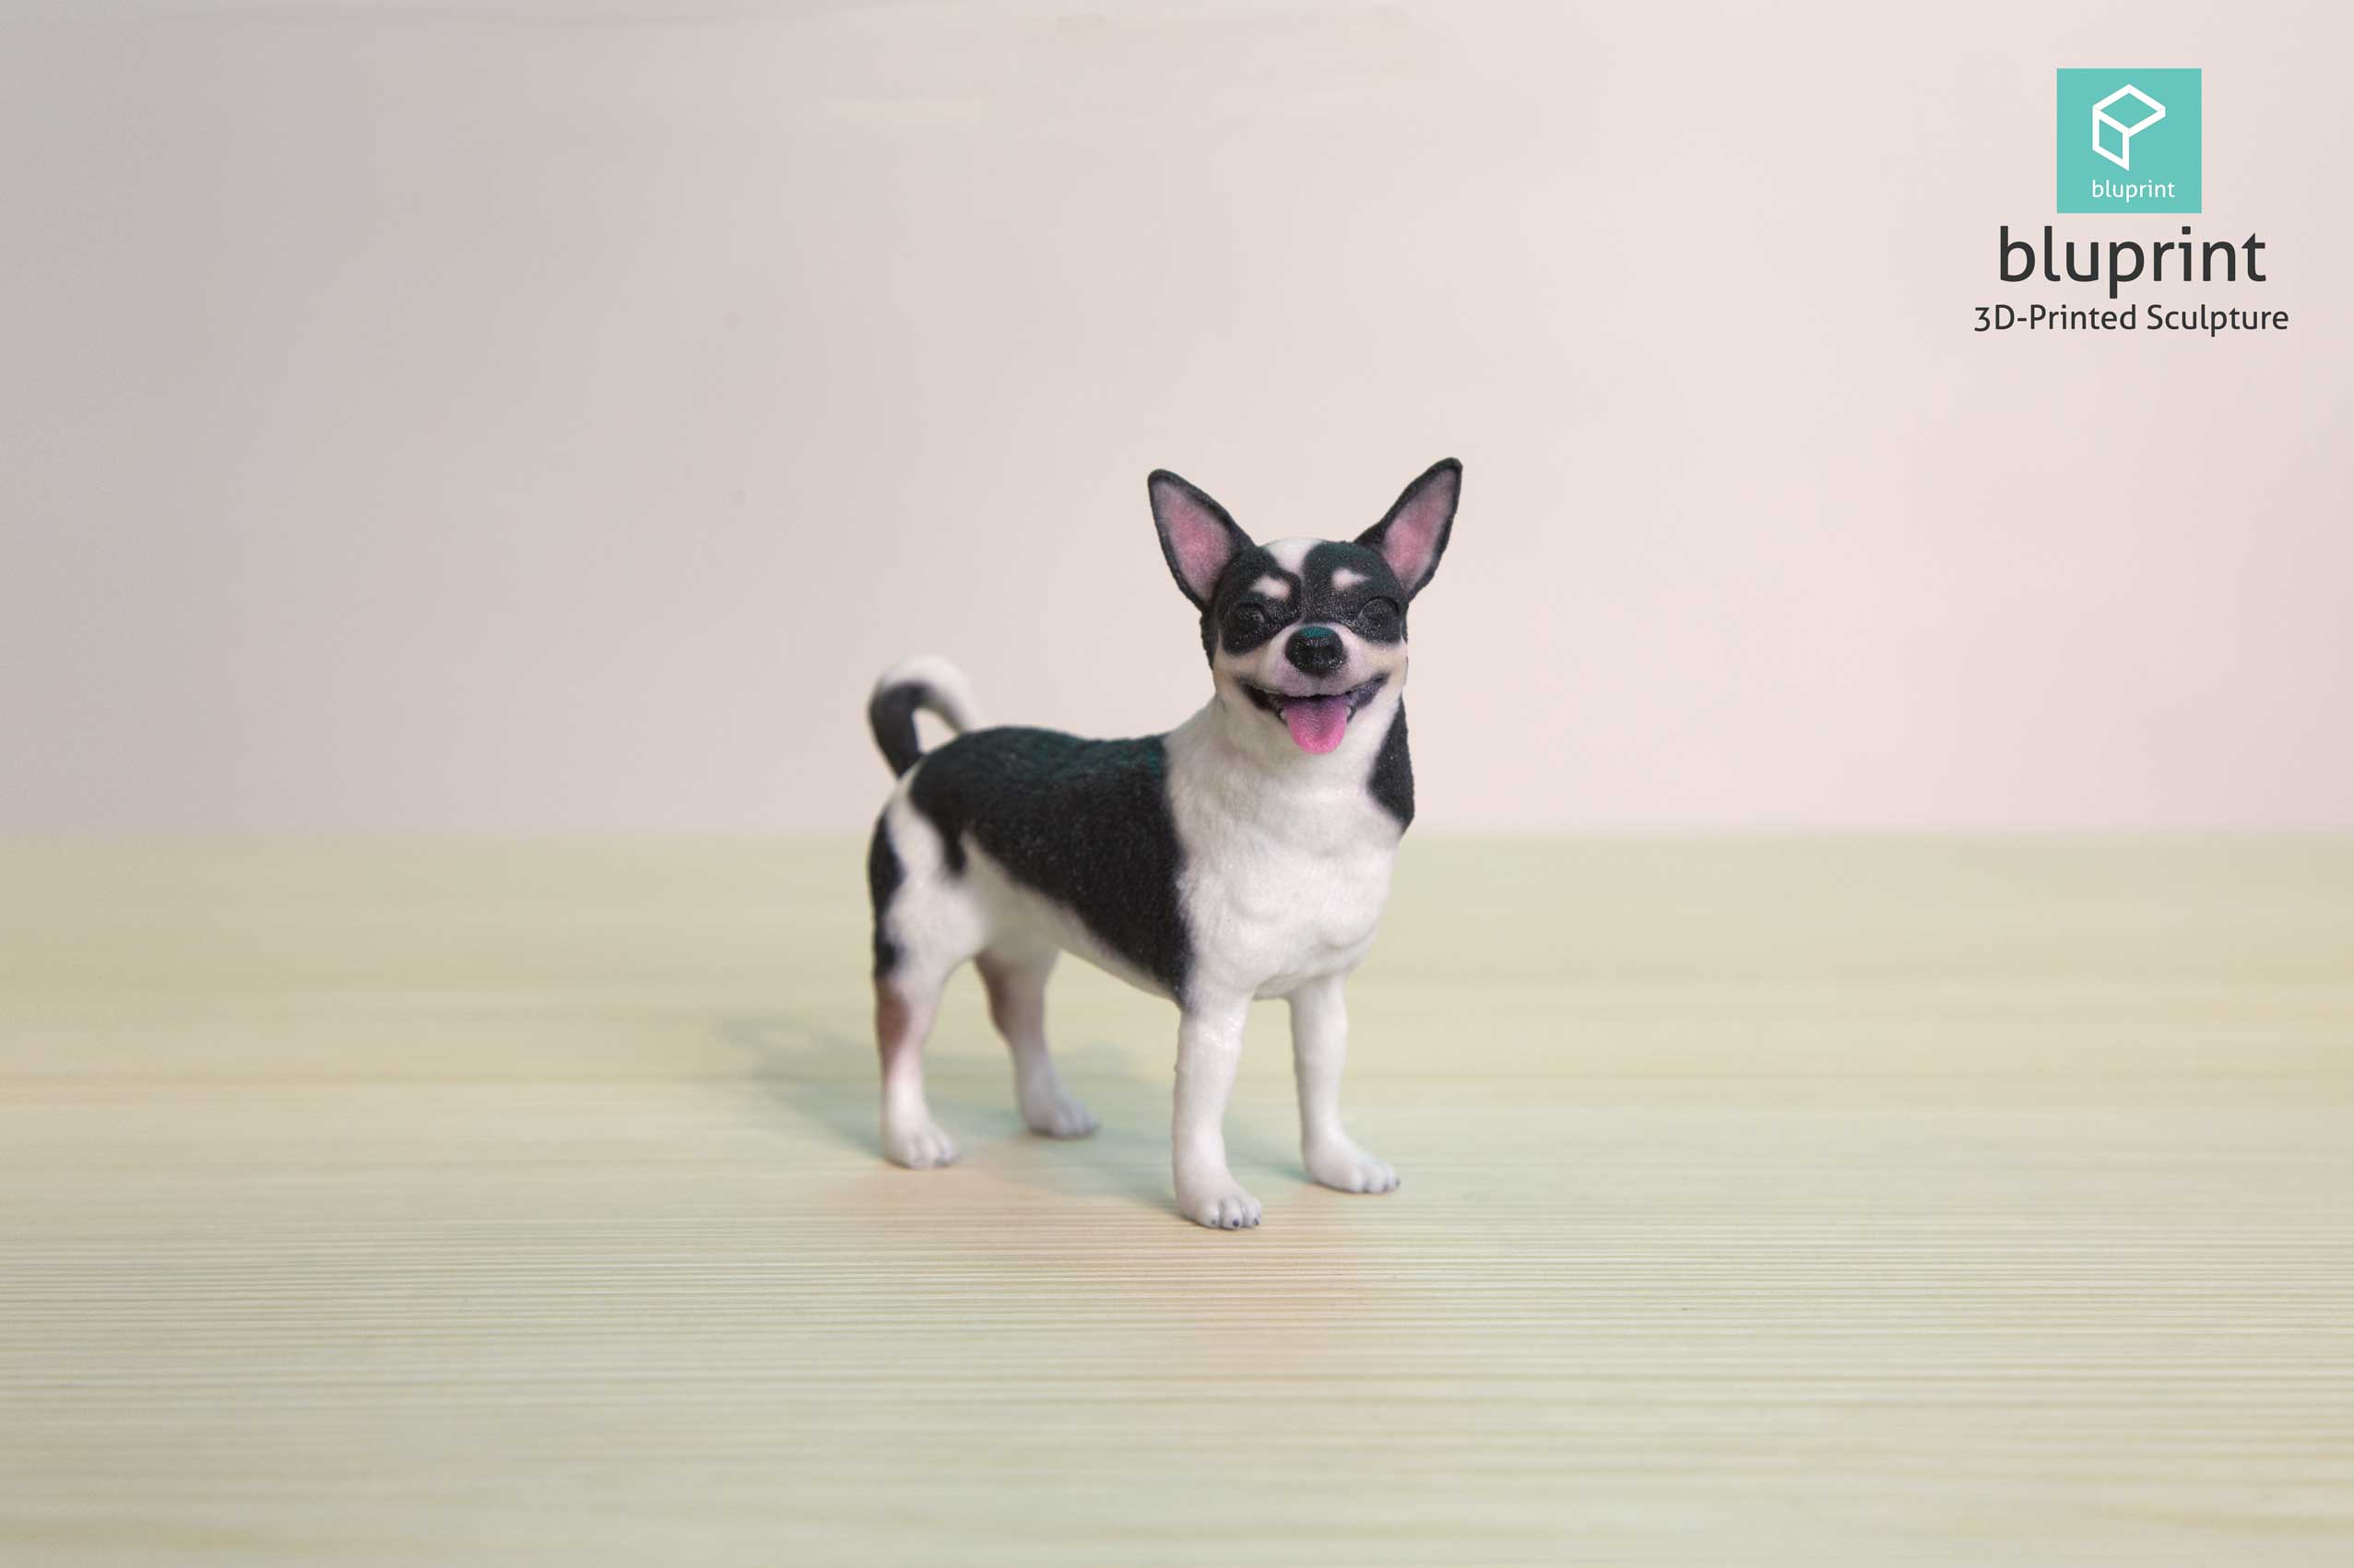 bluprint 3d figure sculpture hong kong dog chihuahua